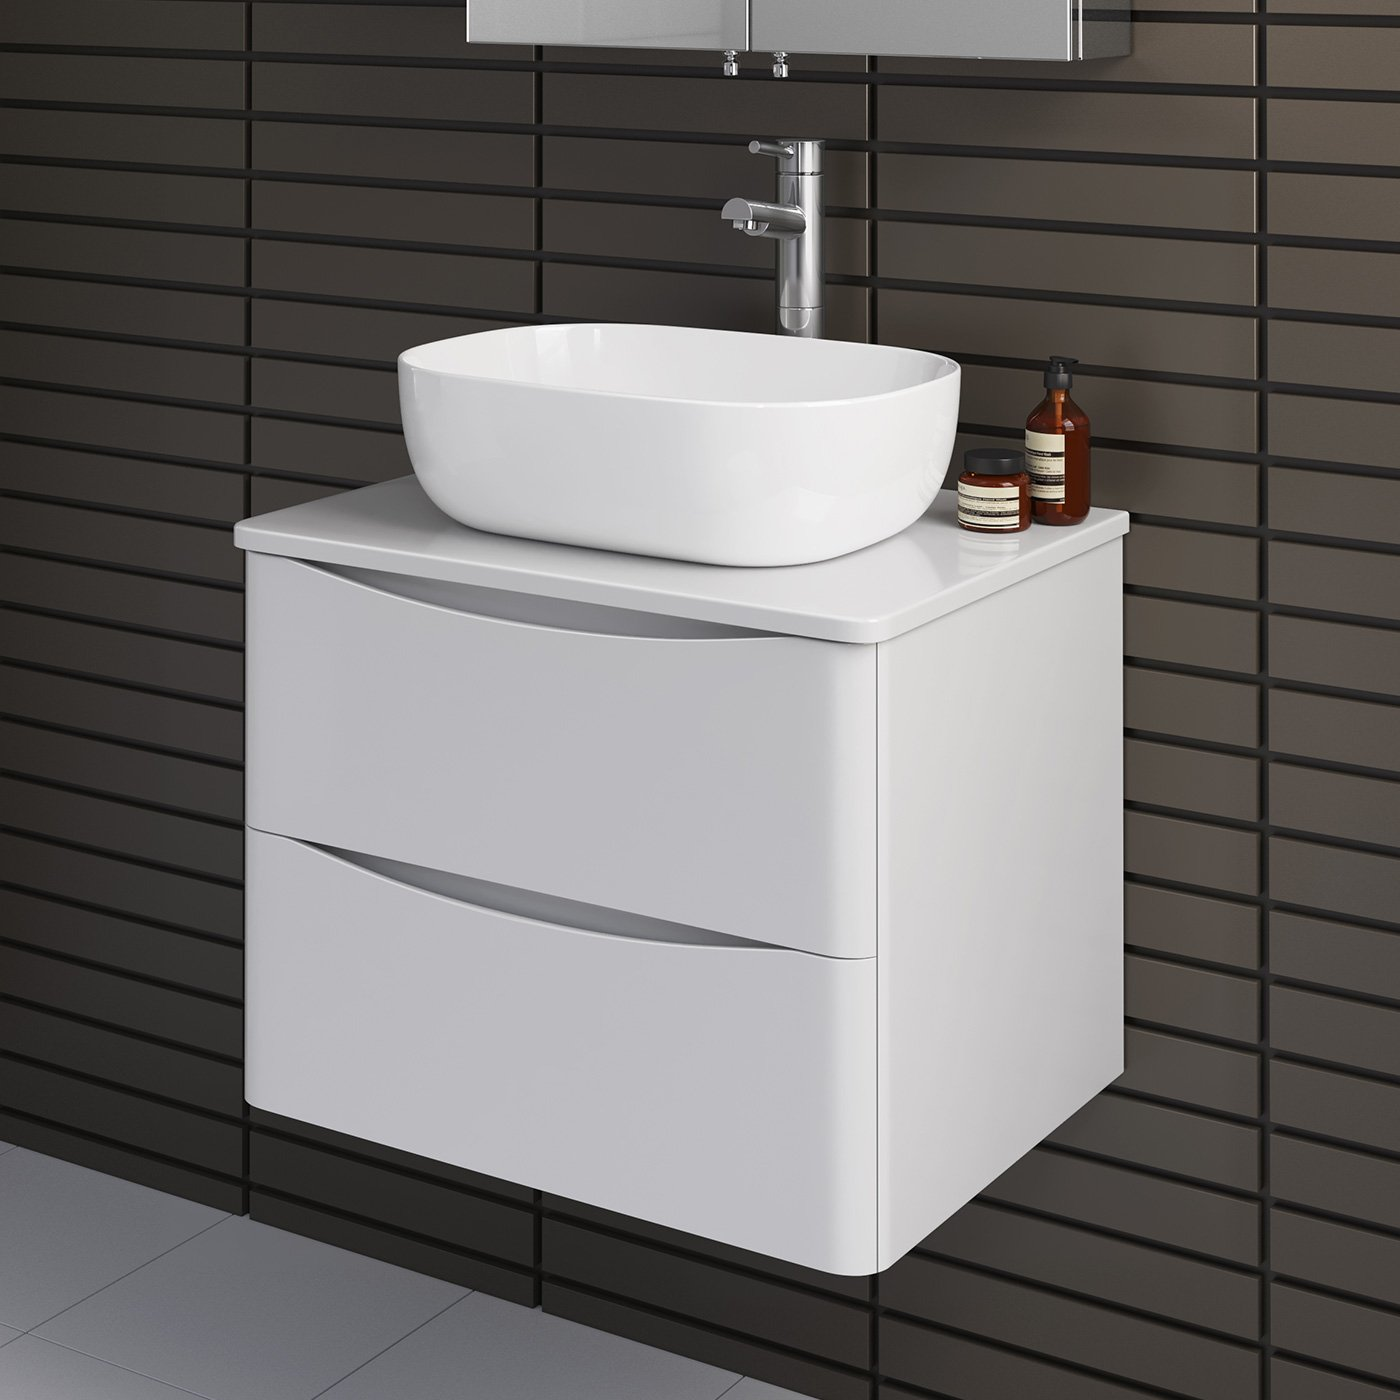 Magnificent Modern Bathroom Furniture Countertop Basin Storage Unit Wall Hung Gloss White Download Free Architecture Designs Scobabritishbridgeorg